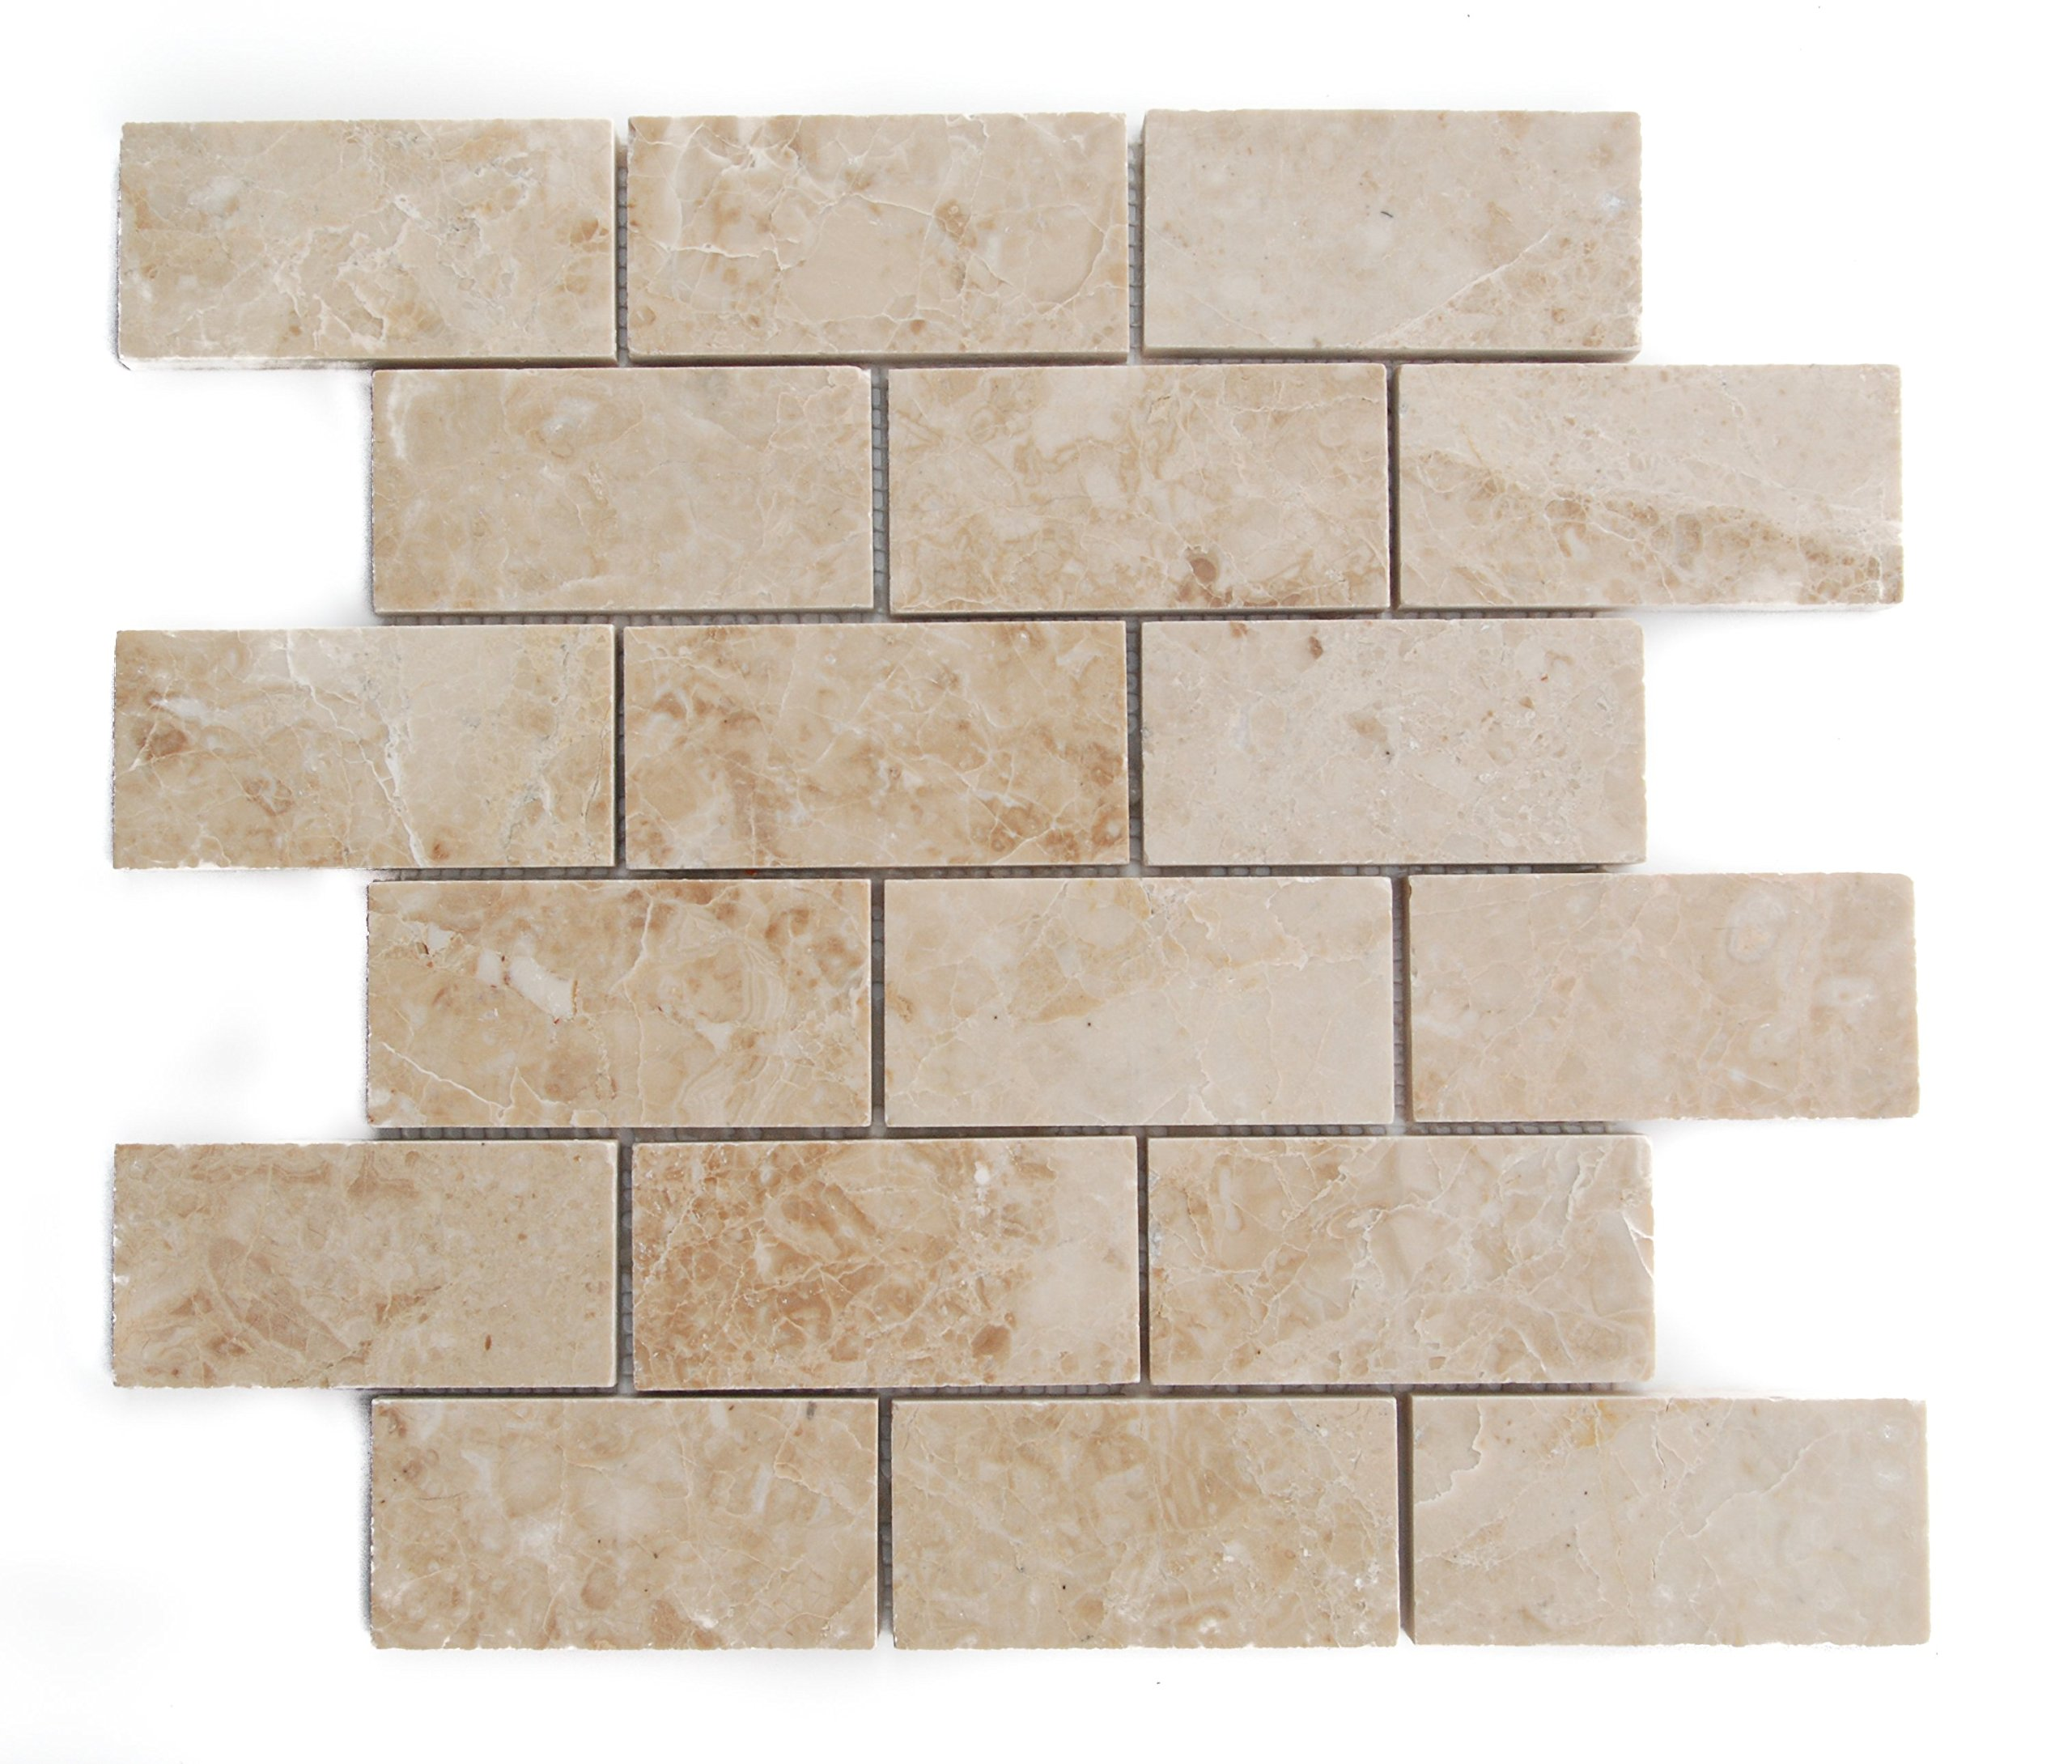 Crema Cappuccino Marble 2 X 4 Brick Polished Mosaic Tiles - Premium Quality (LOT of 5 SHEETS)